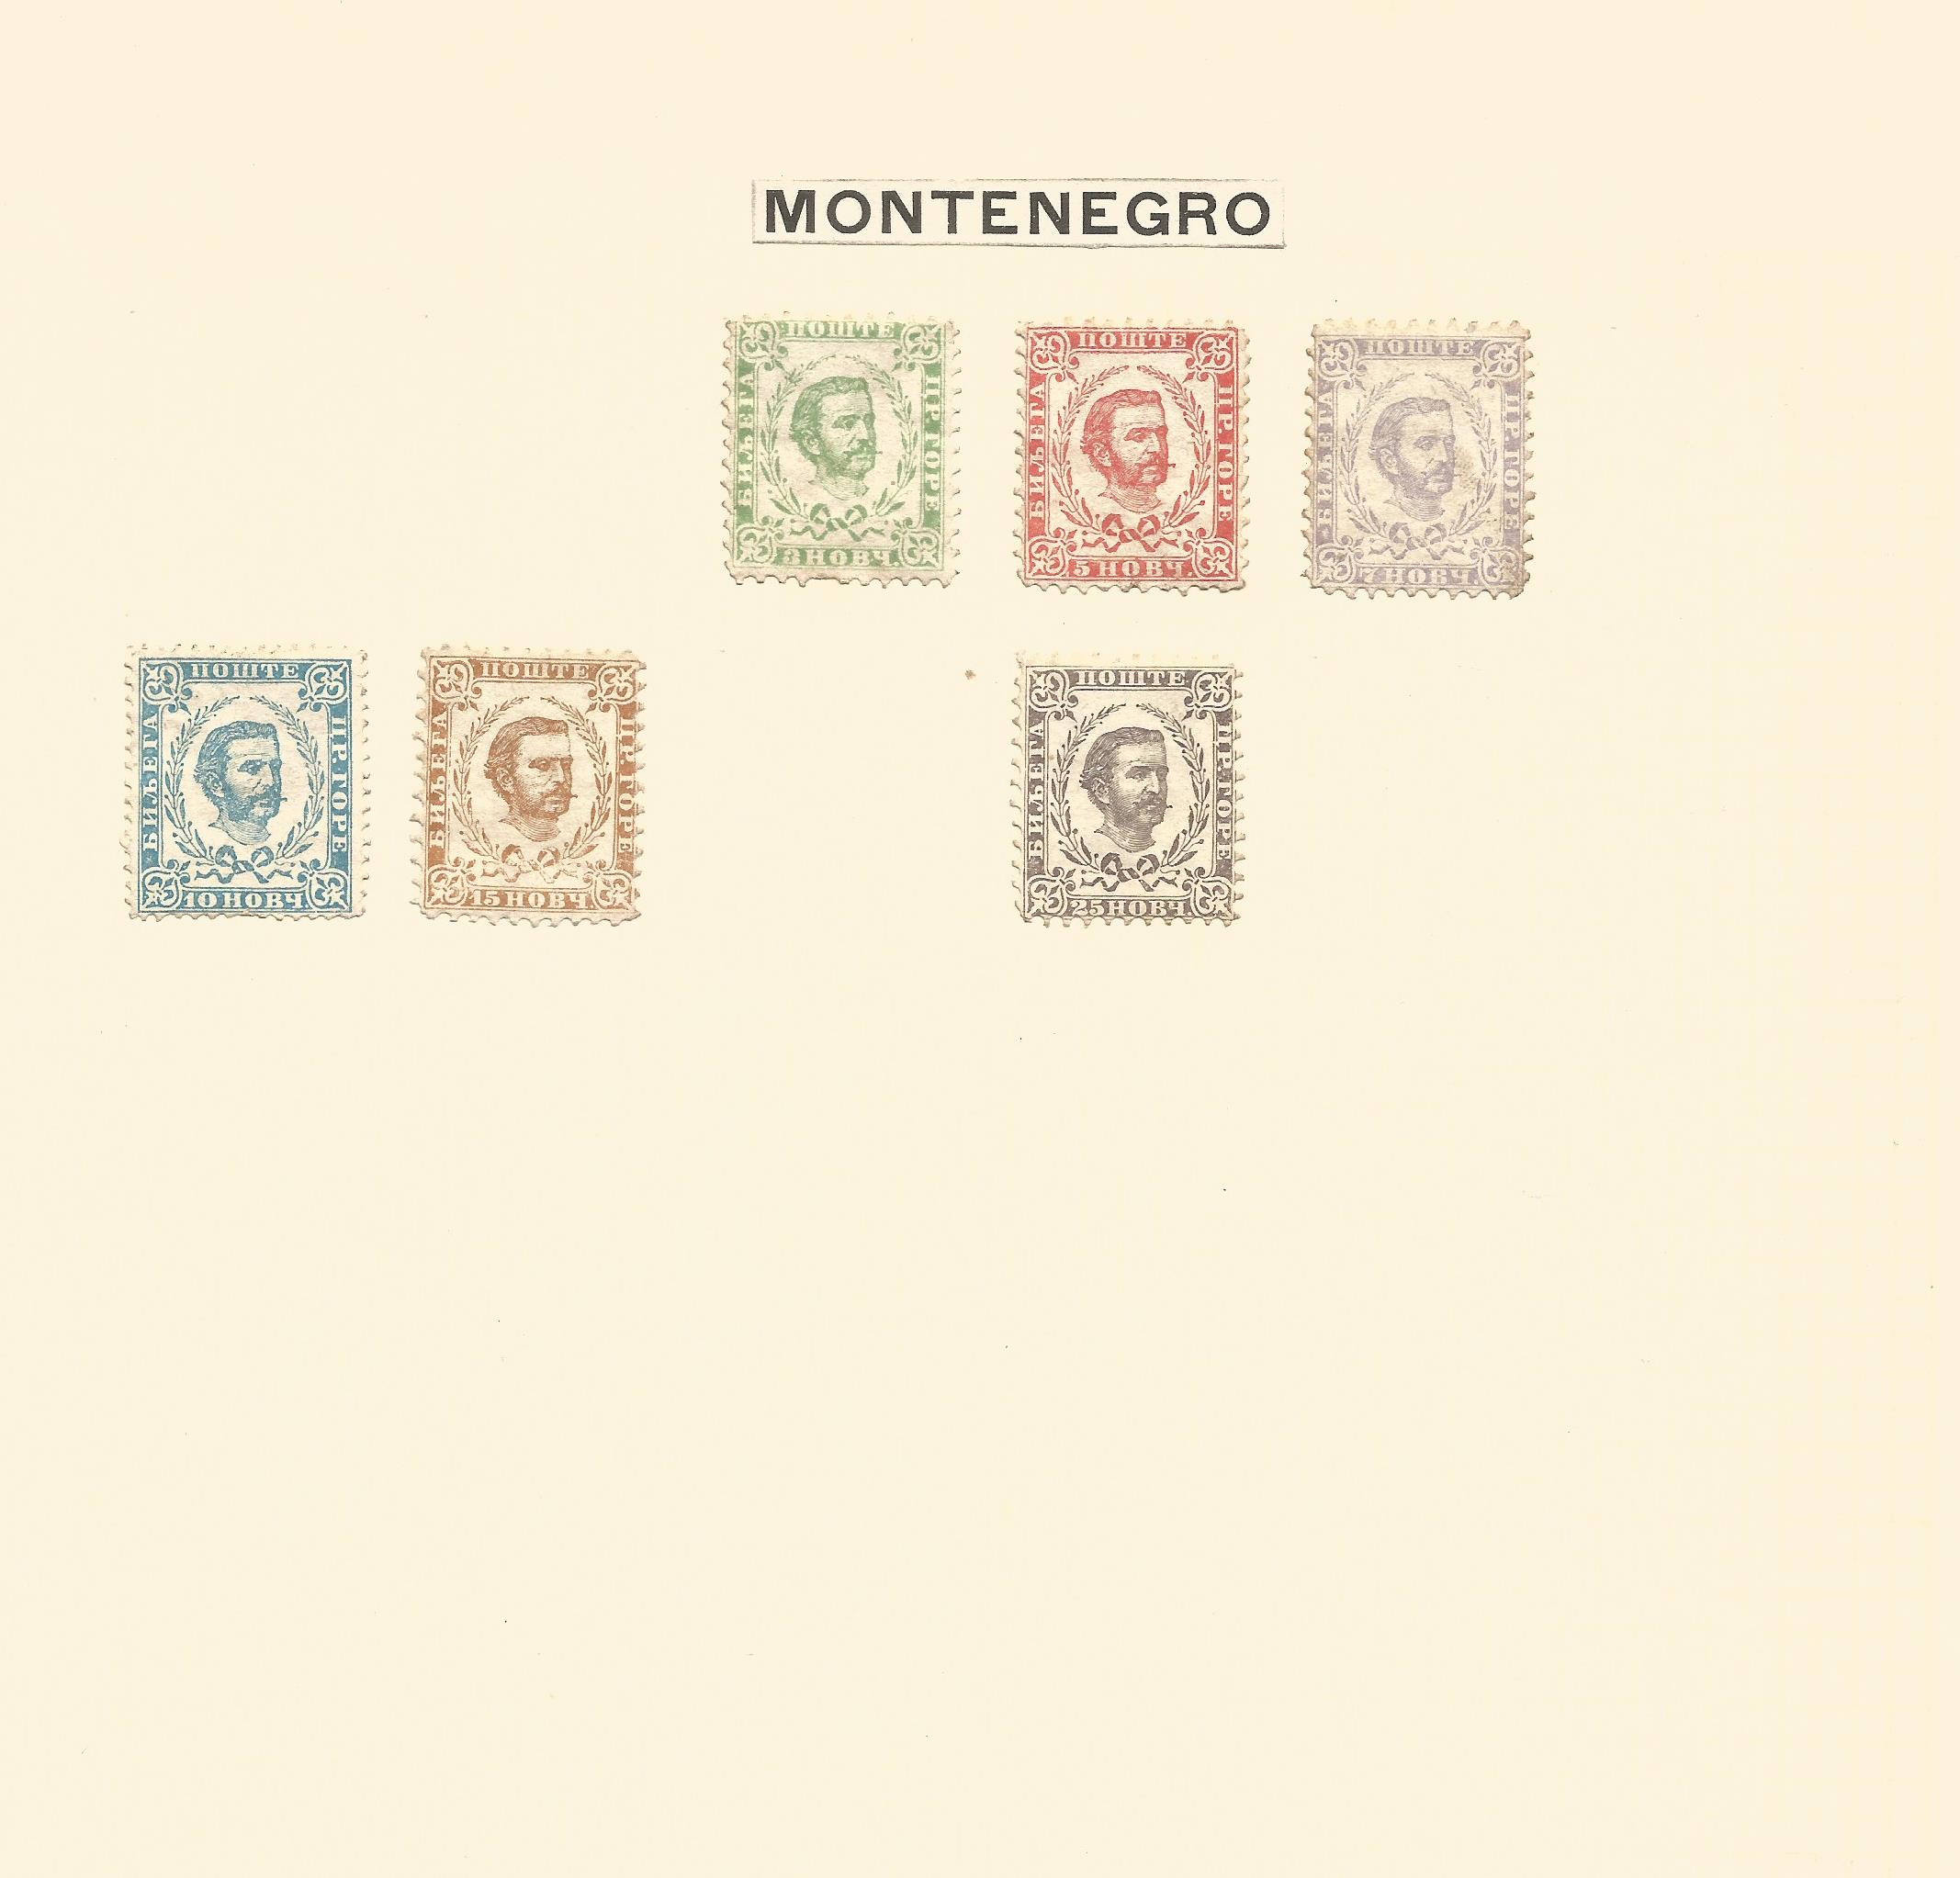 Montenegro stamps on album page. 6 stamps. Good condition. We combine postage on multiple winning